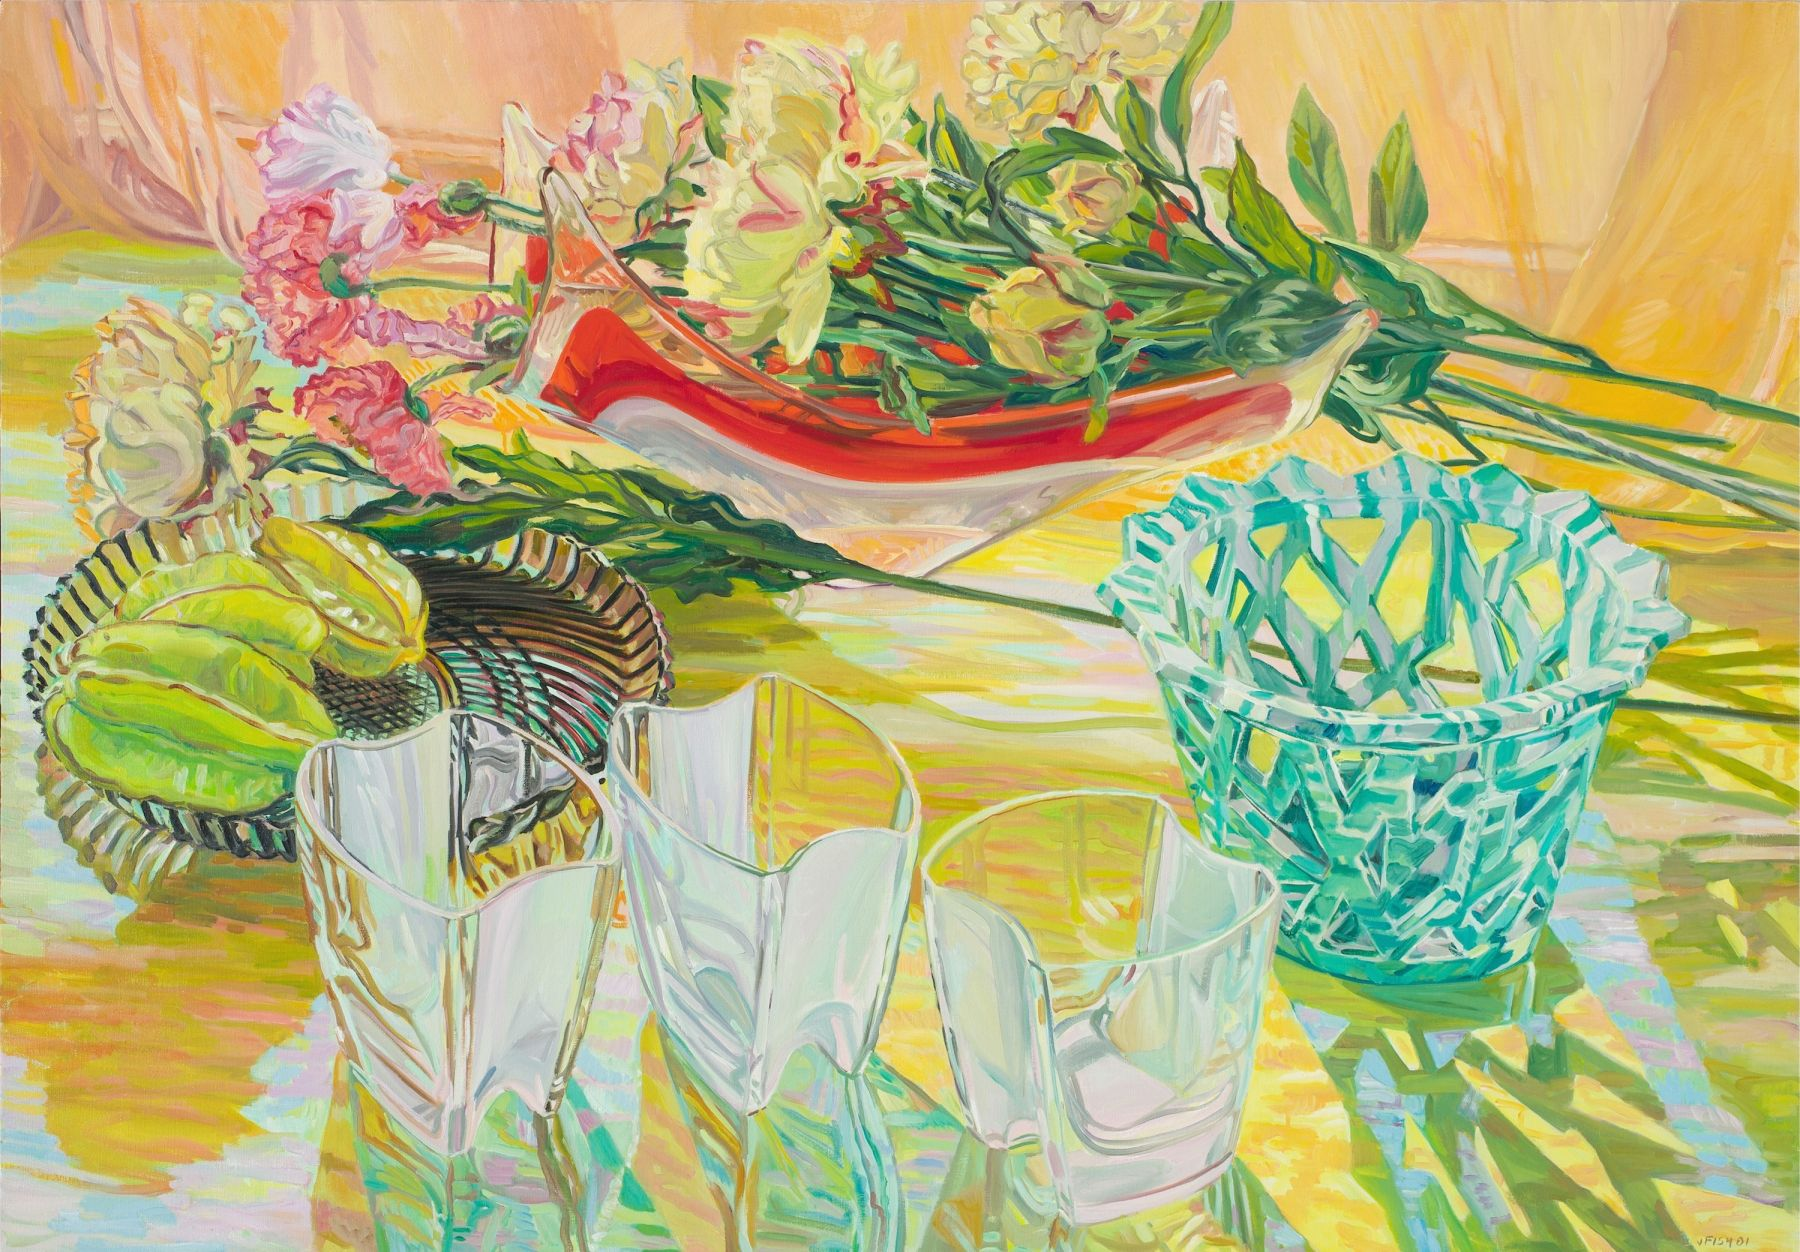 Lattice Vase, 2001, Oil on canvas